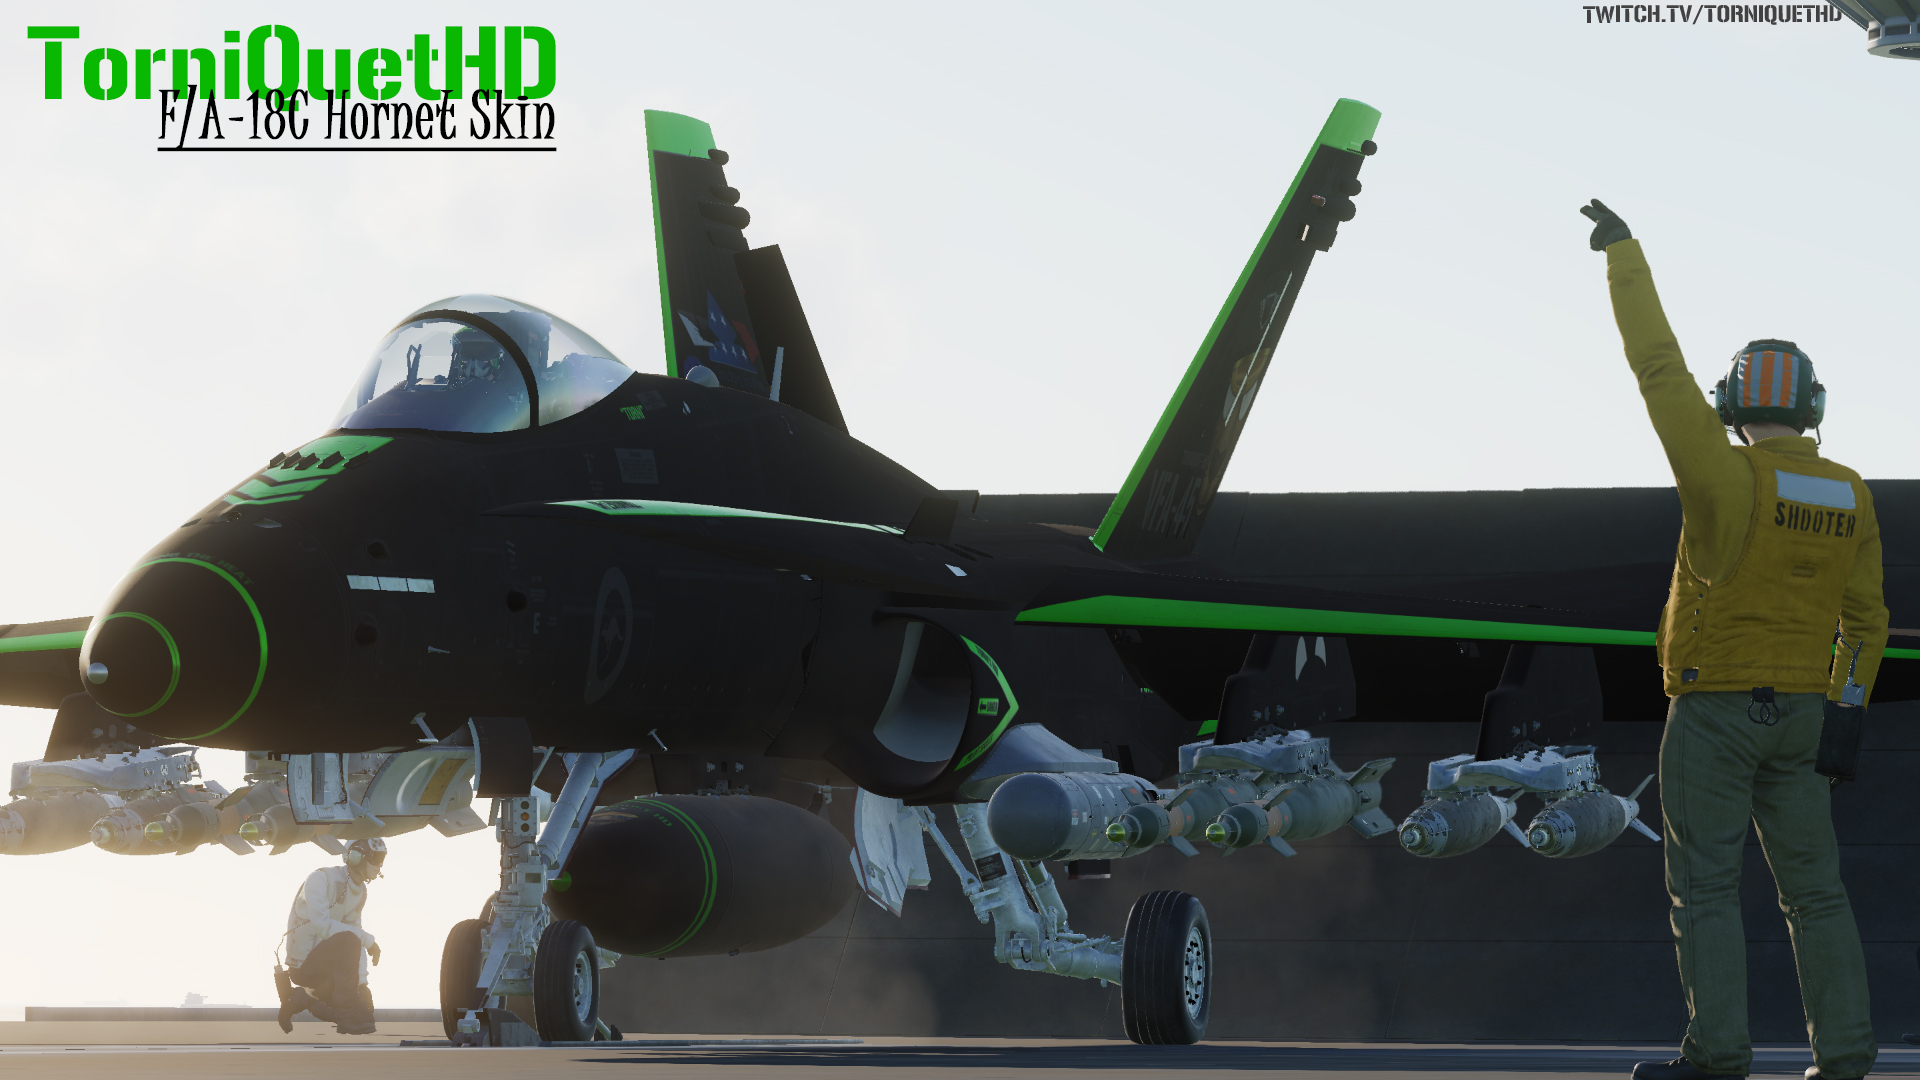 The Official TorniQuet-HD F-18 Skin V3.3.1 (updated 6/7/20)